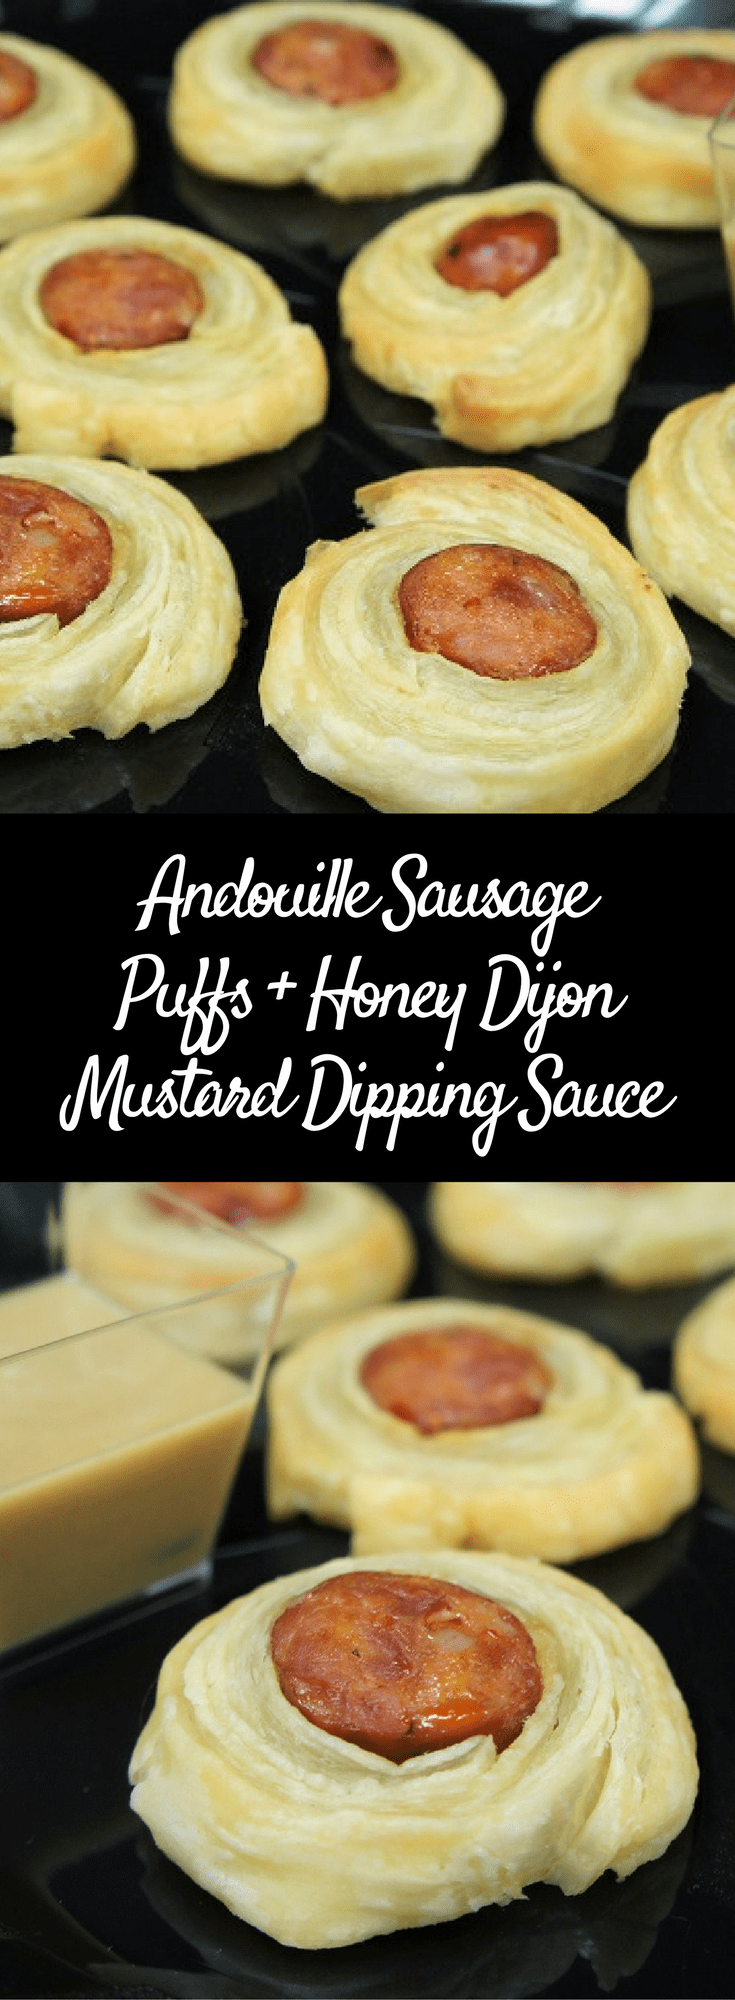 These Andouille Sausage Puffs are a fancy take on pigs in a blanket. This party favorite gets a grown-up twist with spicy andouille sausage and puff pastry. Here we serve them with a simple honey and Dijon mustard dipping sauce. #andouillesausagepuffs #andouillesausage #pigsinablanket #appetizers #partyfood #holidayappetizers